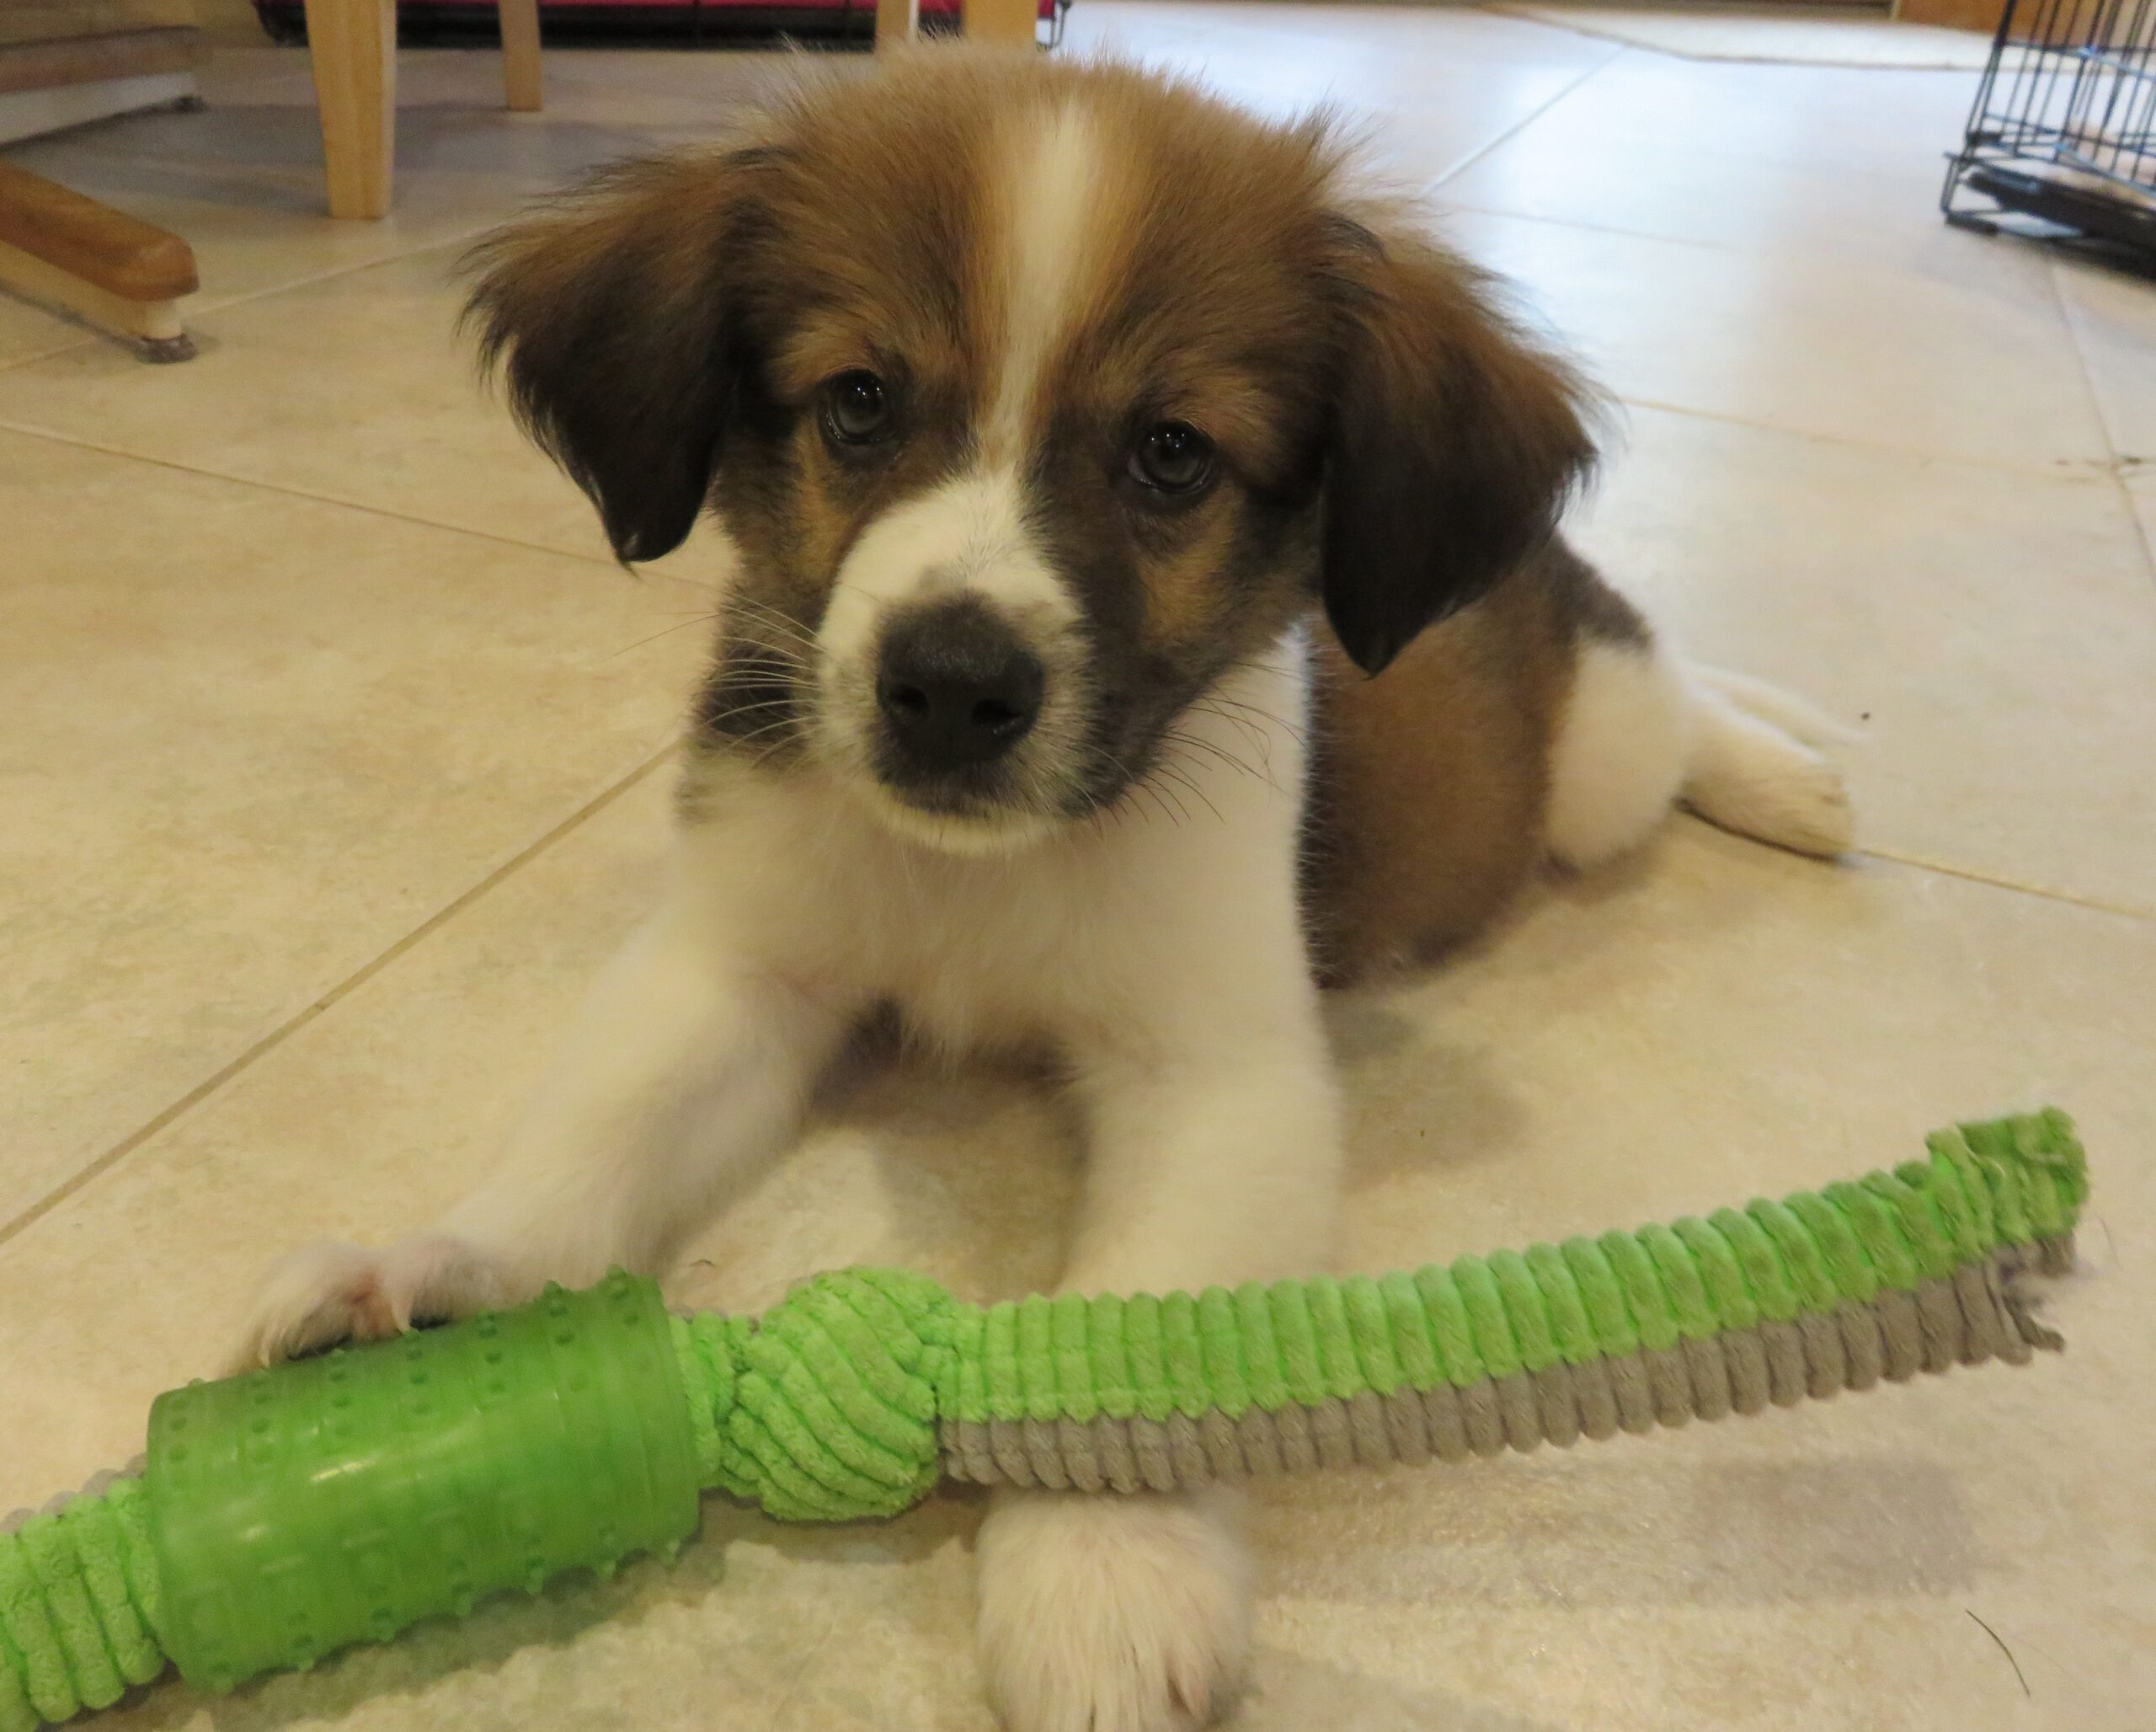 A small brown and white puppy plays with a chew toy